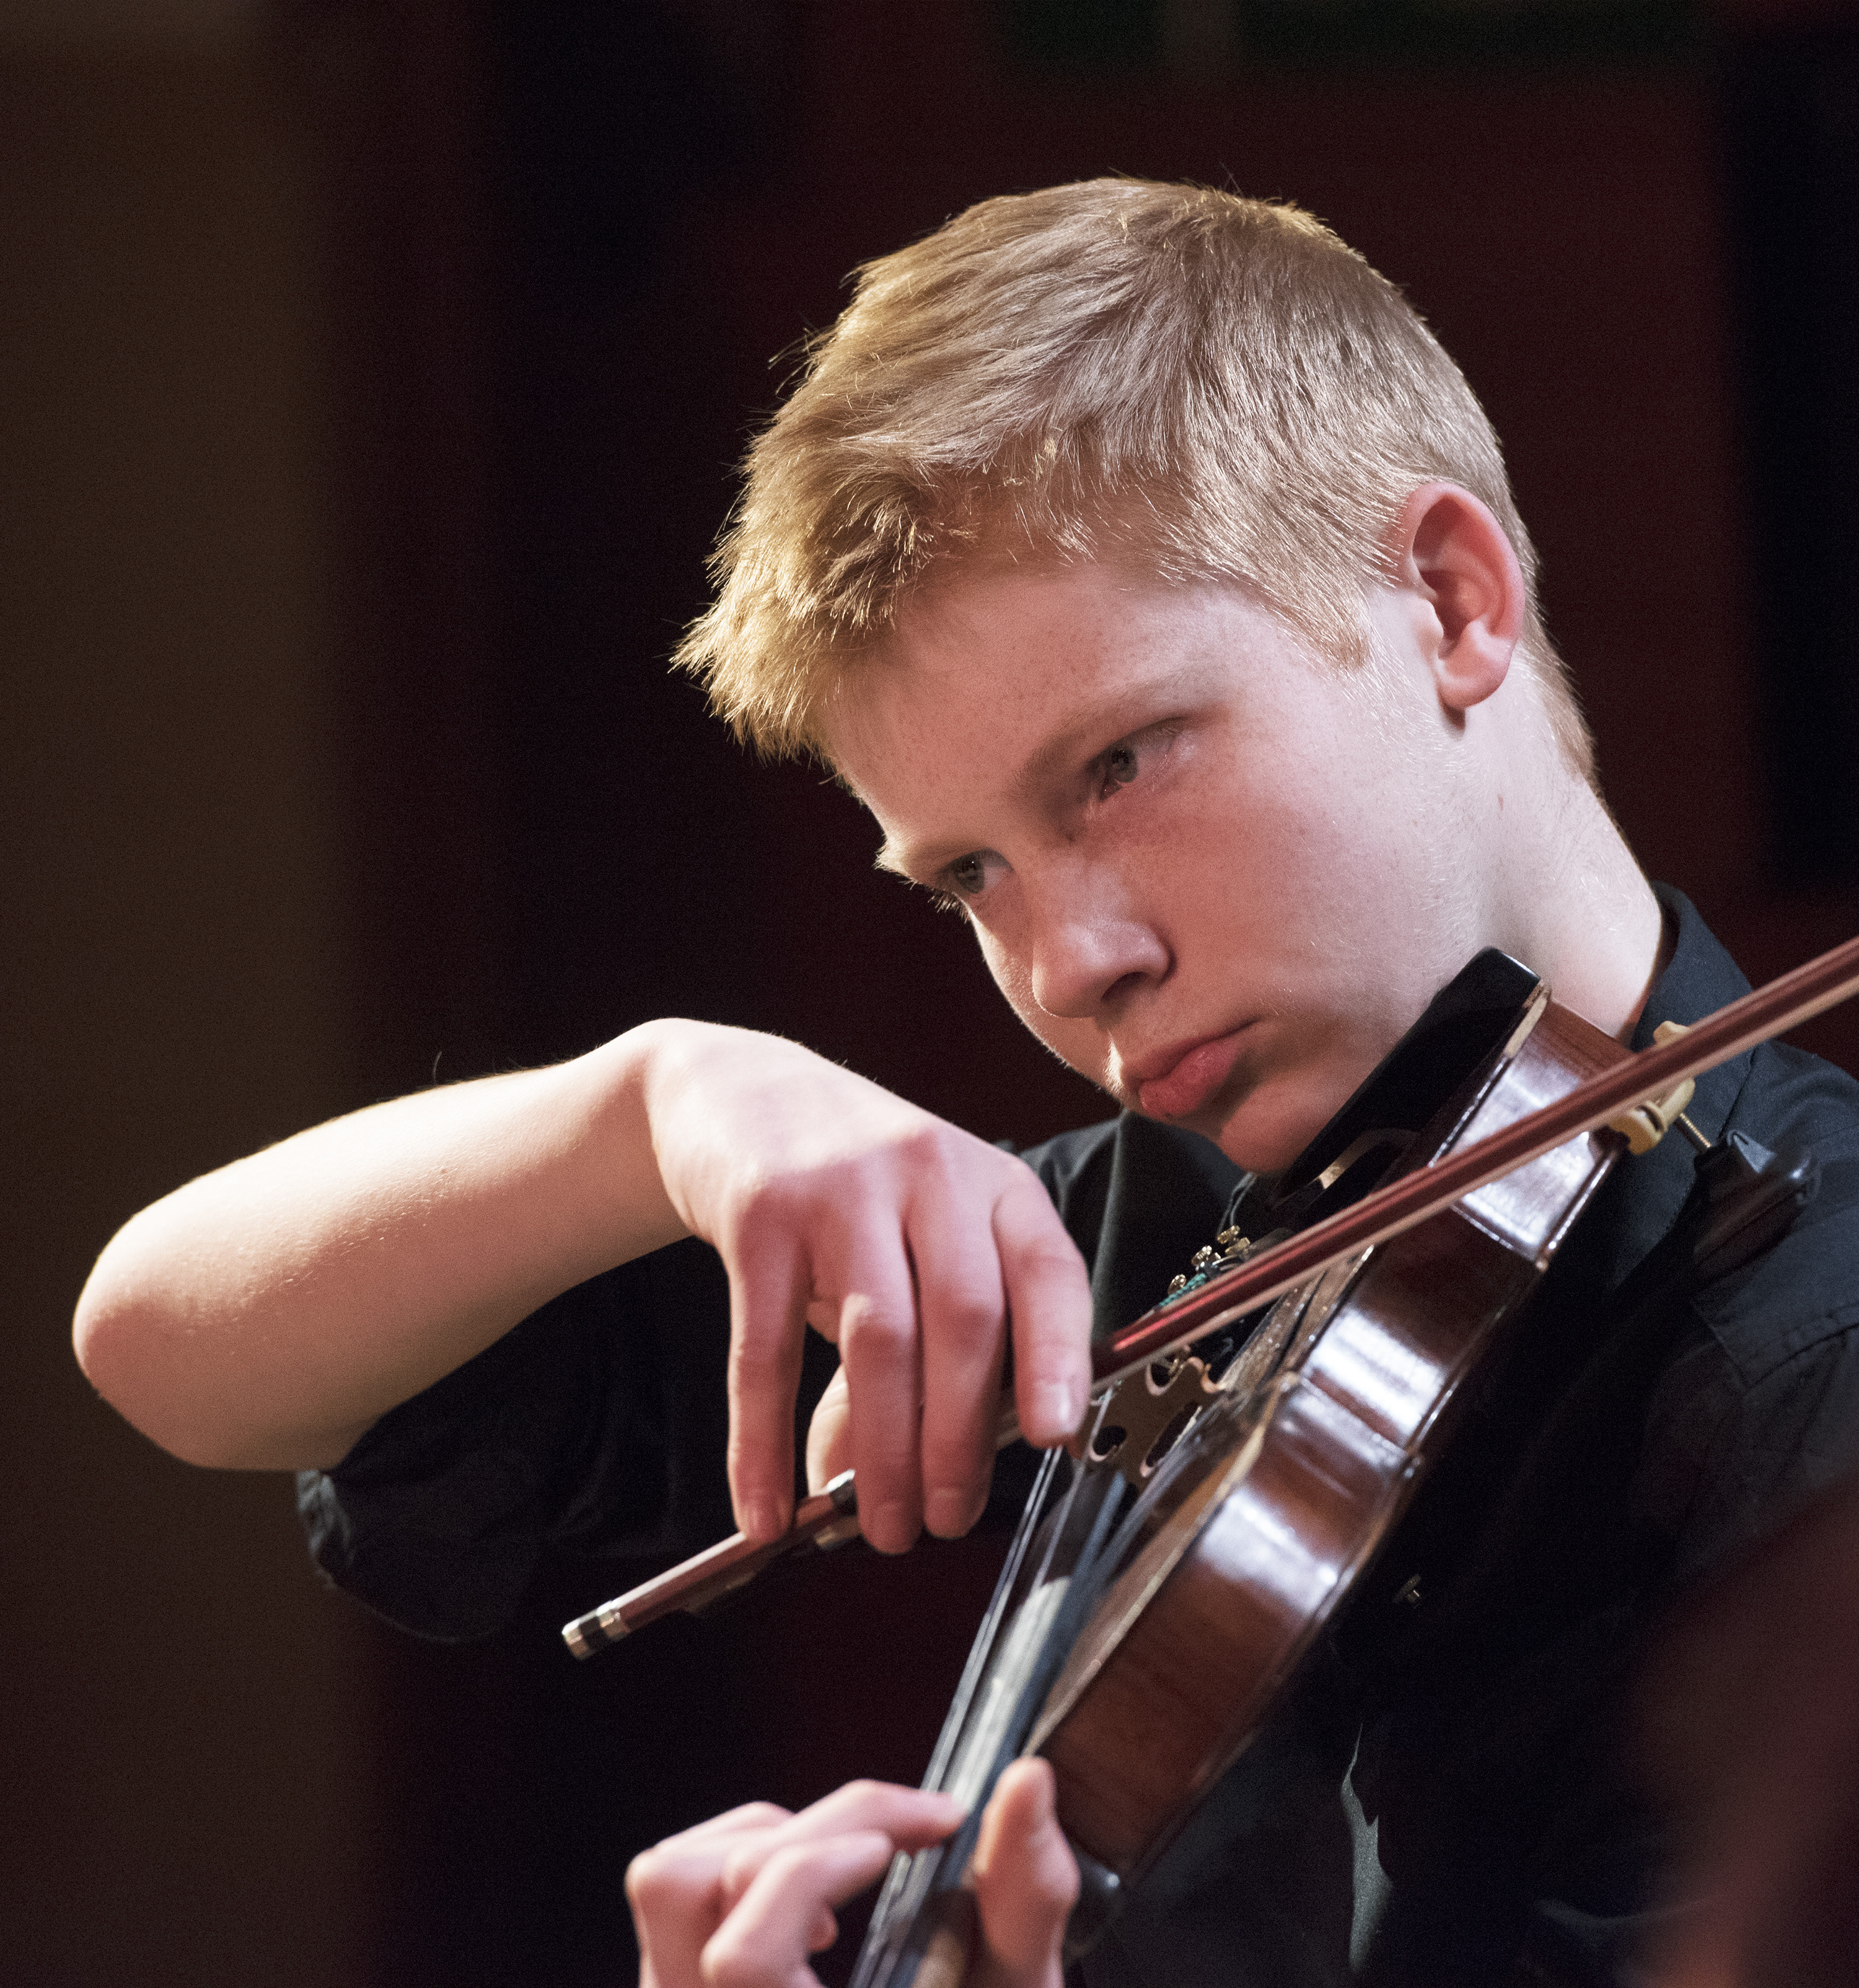 Magdalen College School pupil playing violin during instrumental lesson